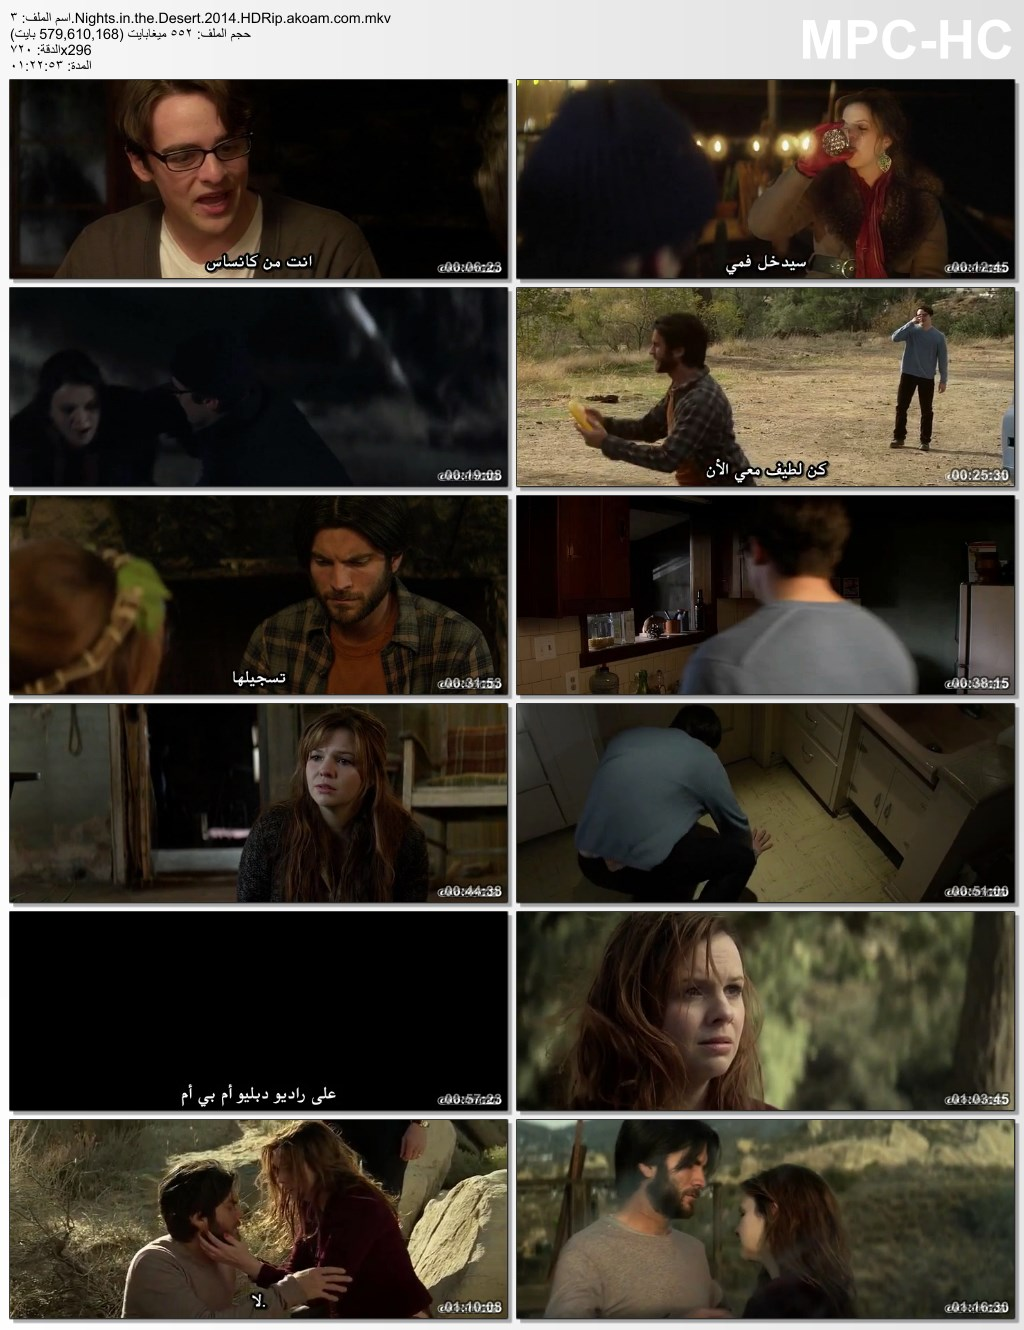 3Nights in the Desert 2014,الدراما,الرومانسية,3Nights in the Desert,3Nights,Desert,Wes Bentley,ويس بنتلي,فنسنت بيازا,Vincent Piazza,Amber Tamblyn